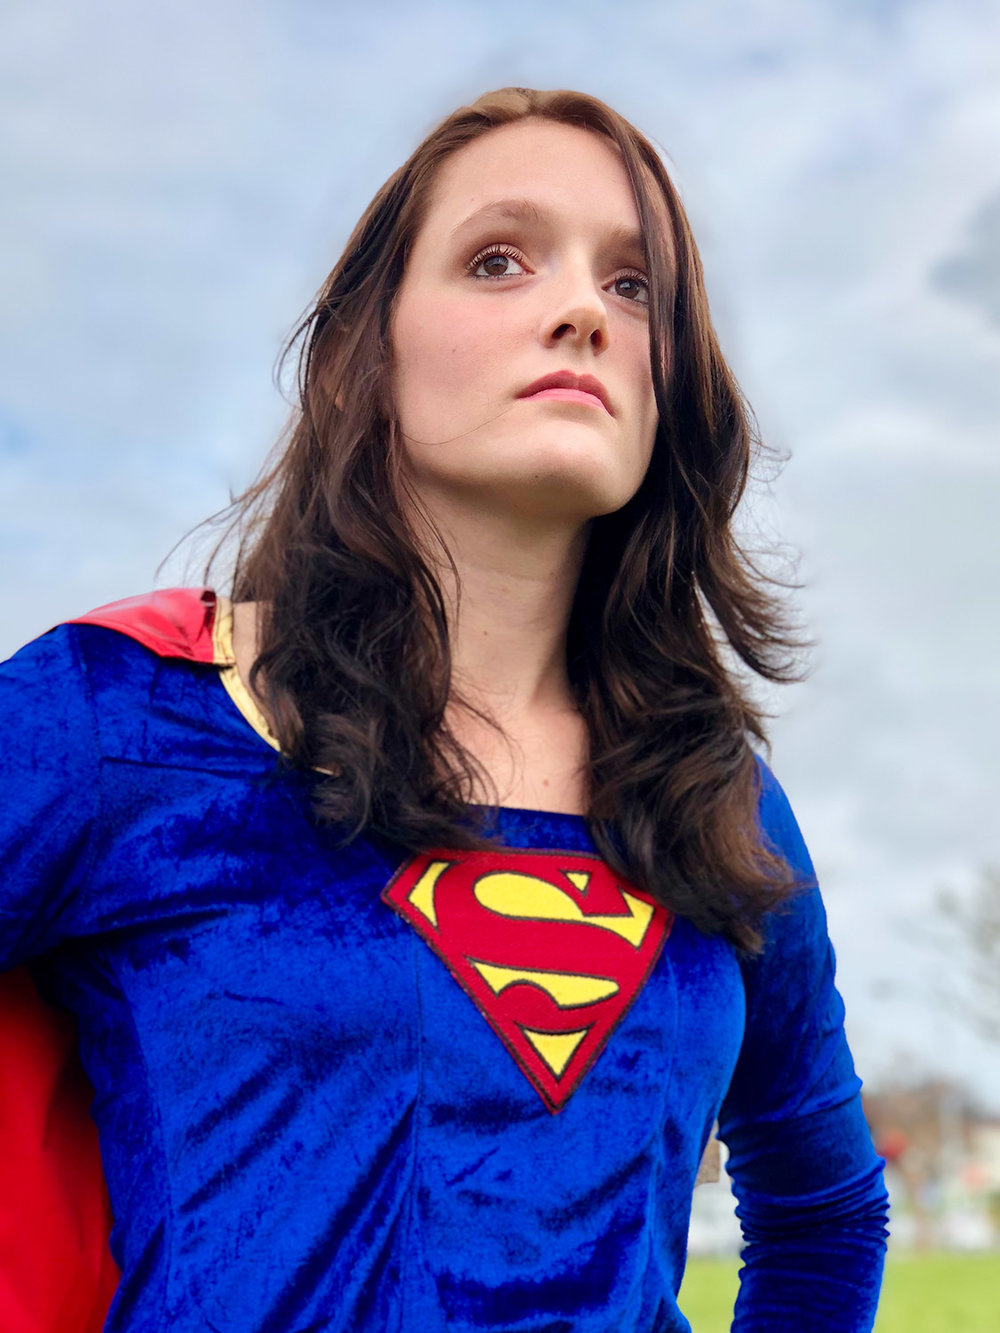 Supergirl #ShotOniPhone #ShotOniPhoneX using portrait mode.